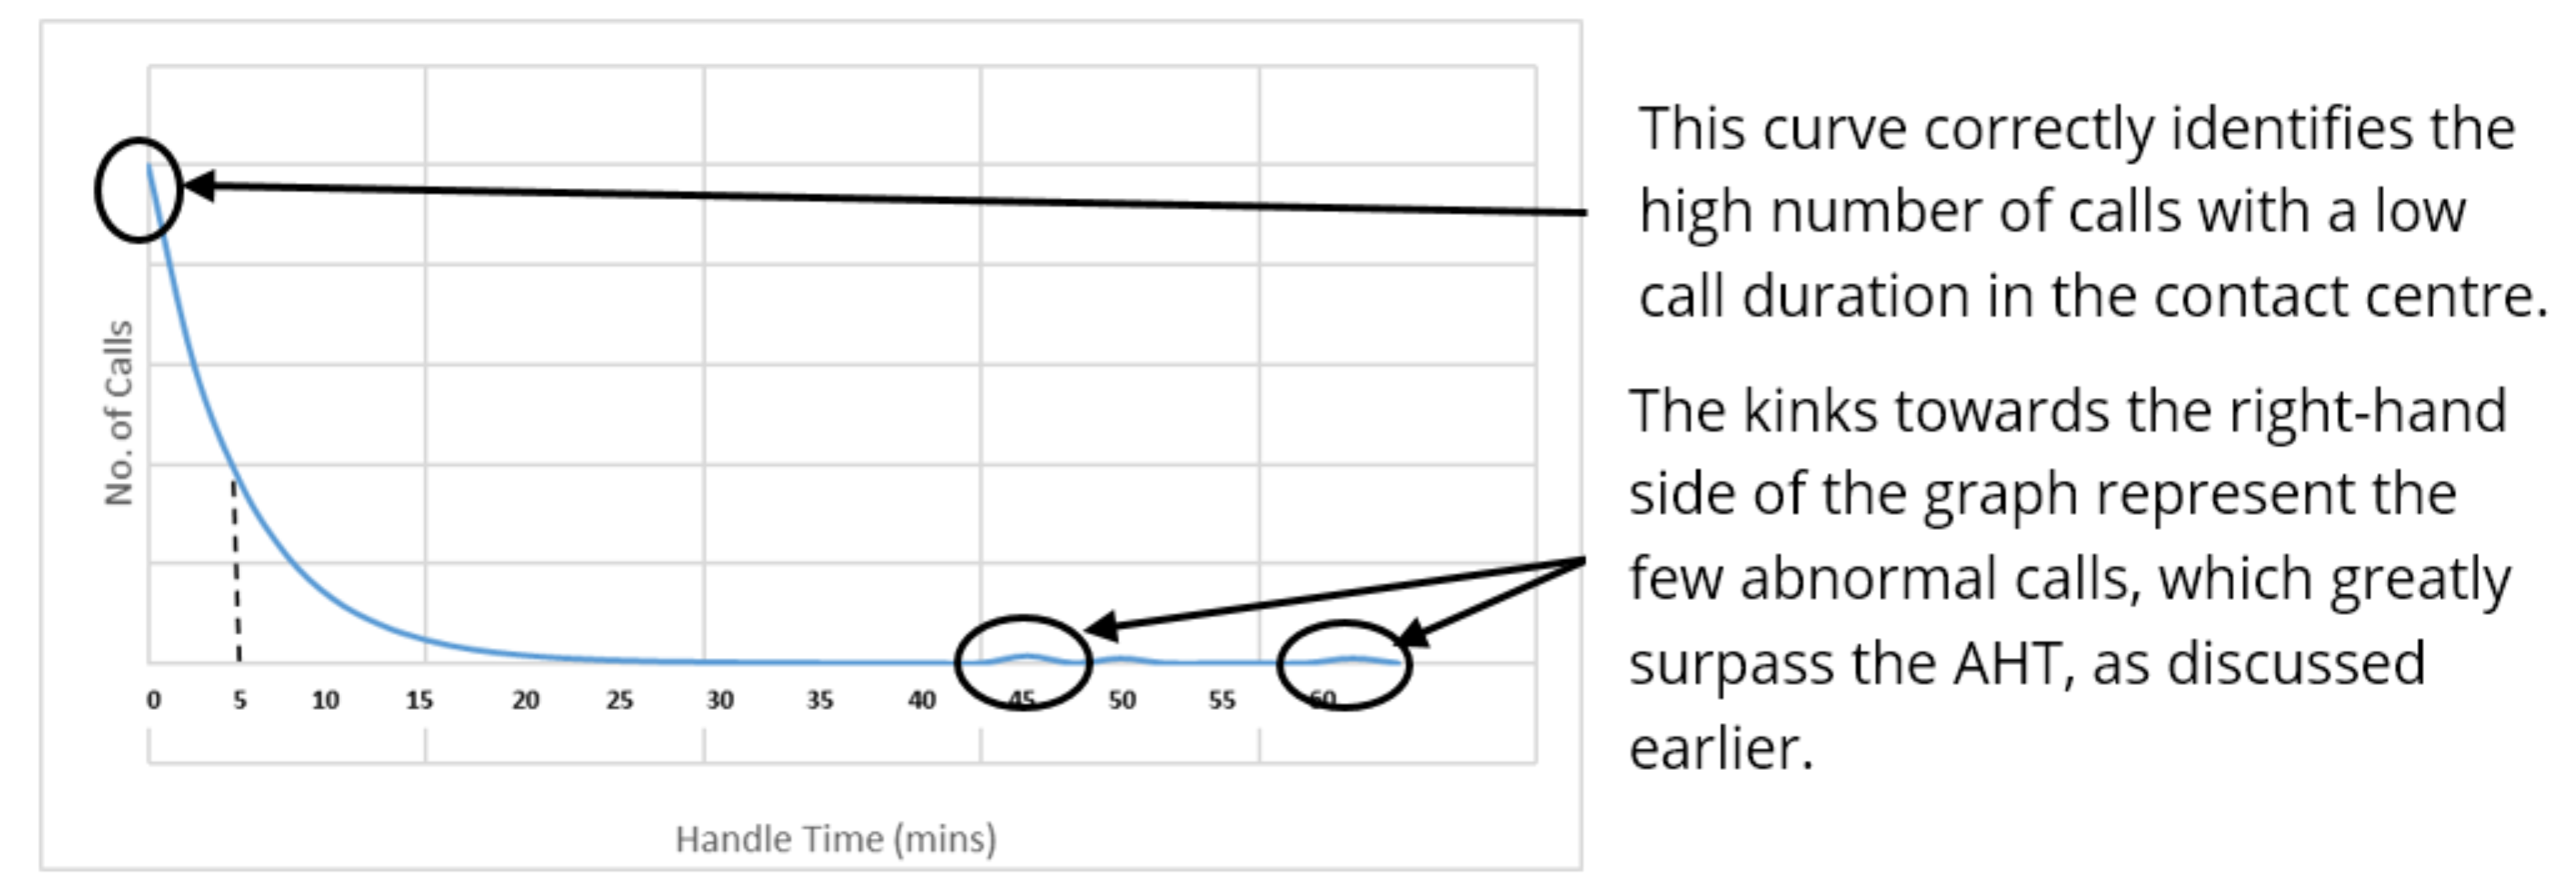 The erlang distribution curve correctly identifies the high number of calls with a low call duration in the contact centre. The kinks towards the right-hand side of the graph represent the few abnormal calls, which greatly surpass the AHT,